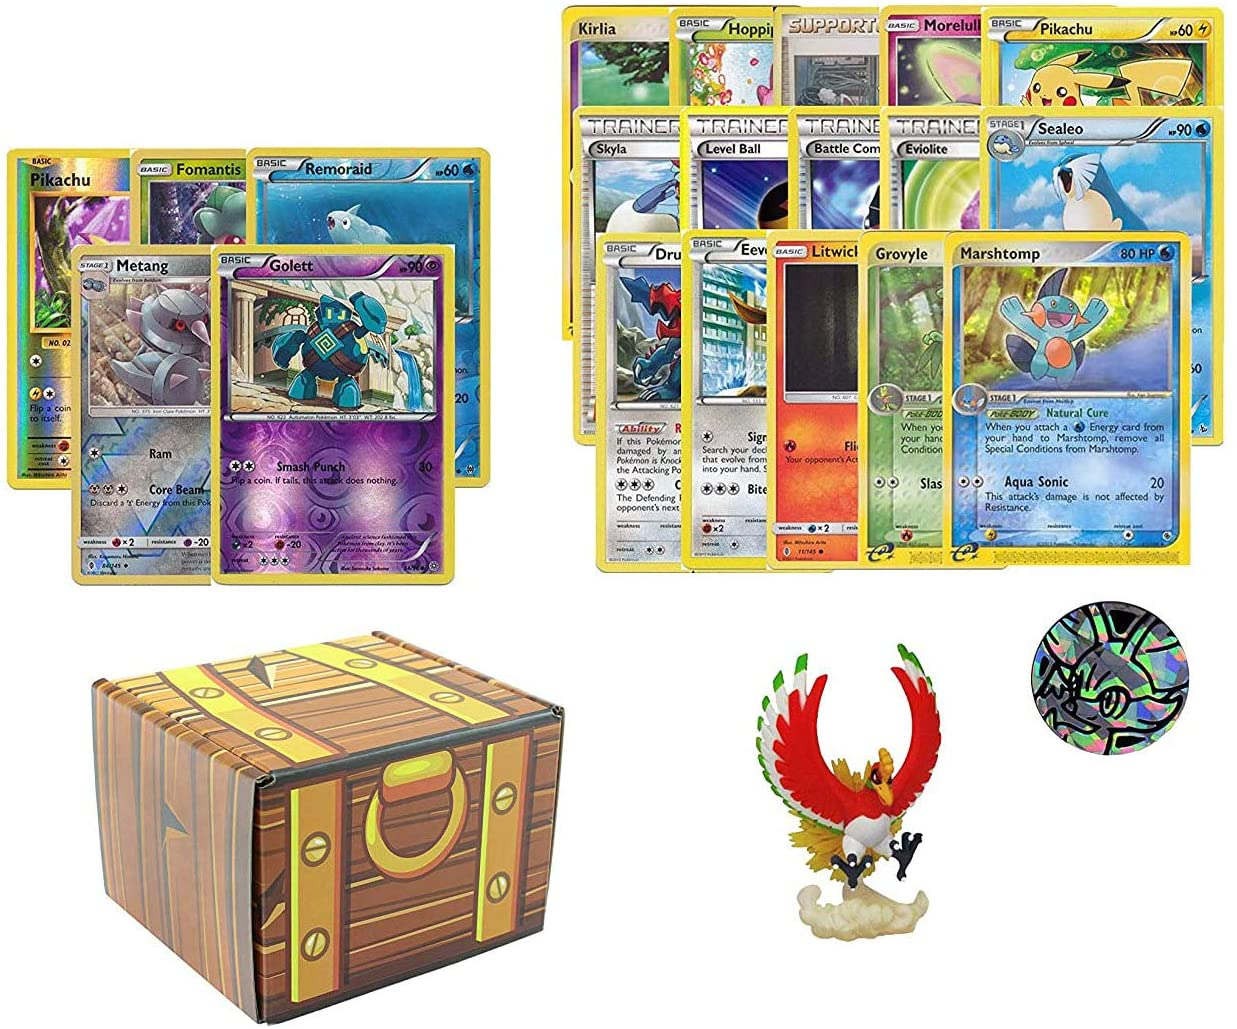 100 Assorted Pokemon Cards: Features 5 Reverse Holos, 1 Pokemon Figure, 1 Pokemon Coin, and 95 Common/Uncommon - All Cards are Authentic - Includes Golden Groundhog Treasure Chest Storage Box